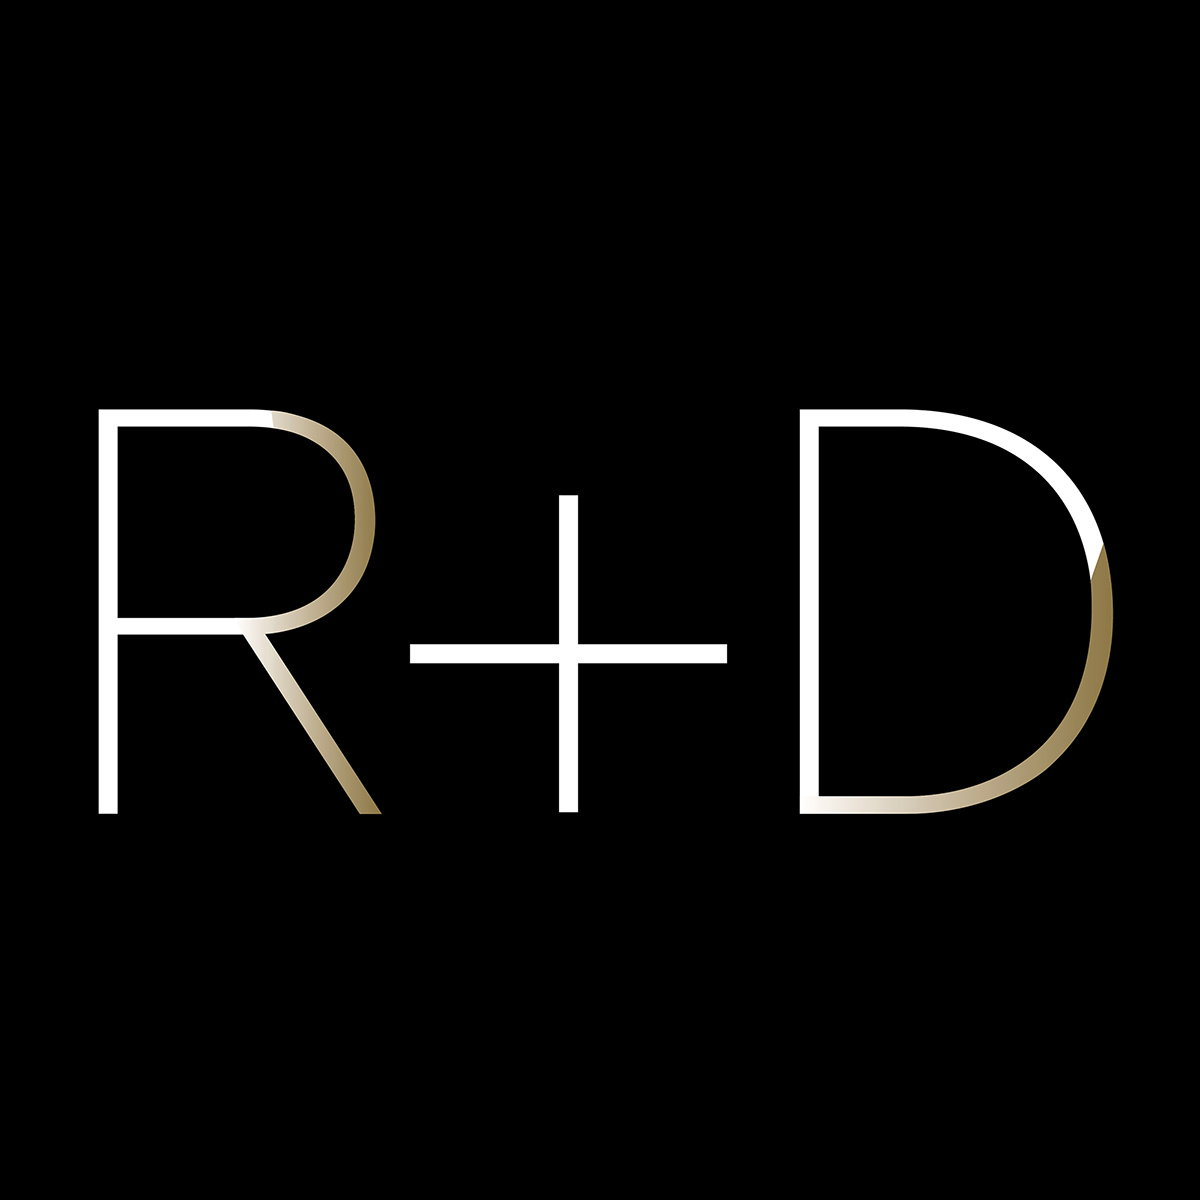 ARCHITECT's 13th Annual R+D Awards - Call for Entries